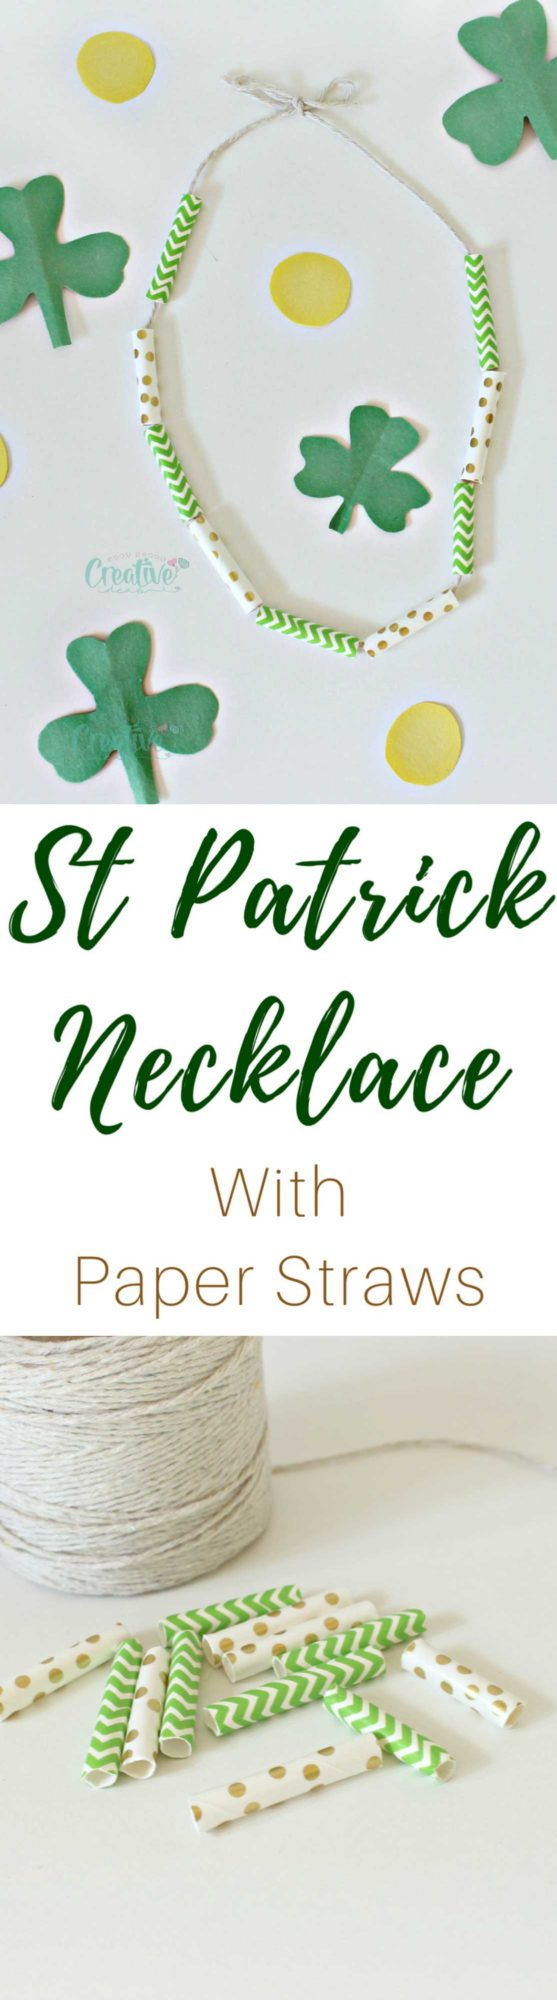 St Patrick necklace